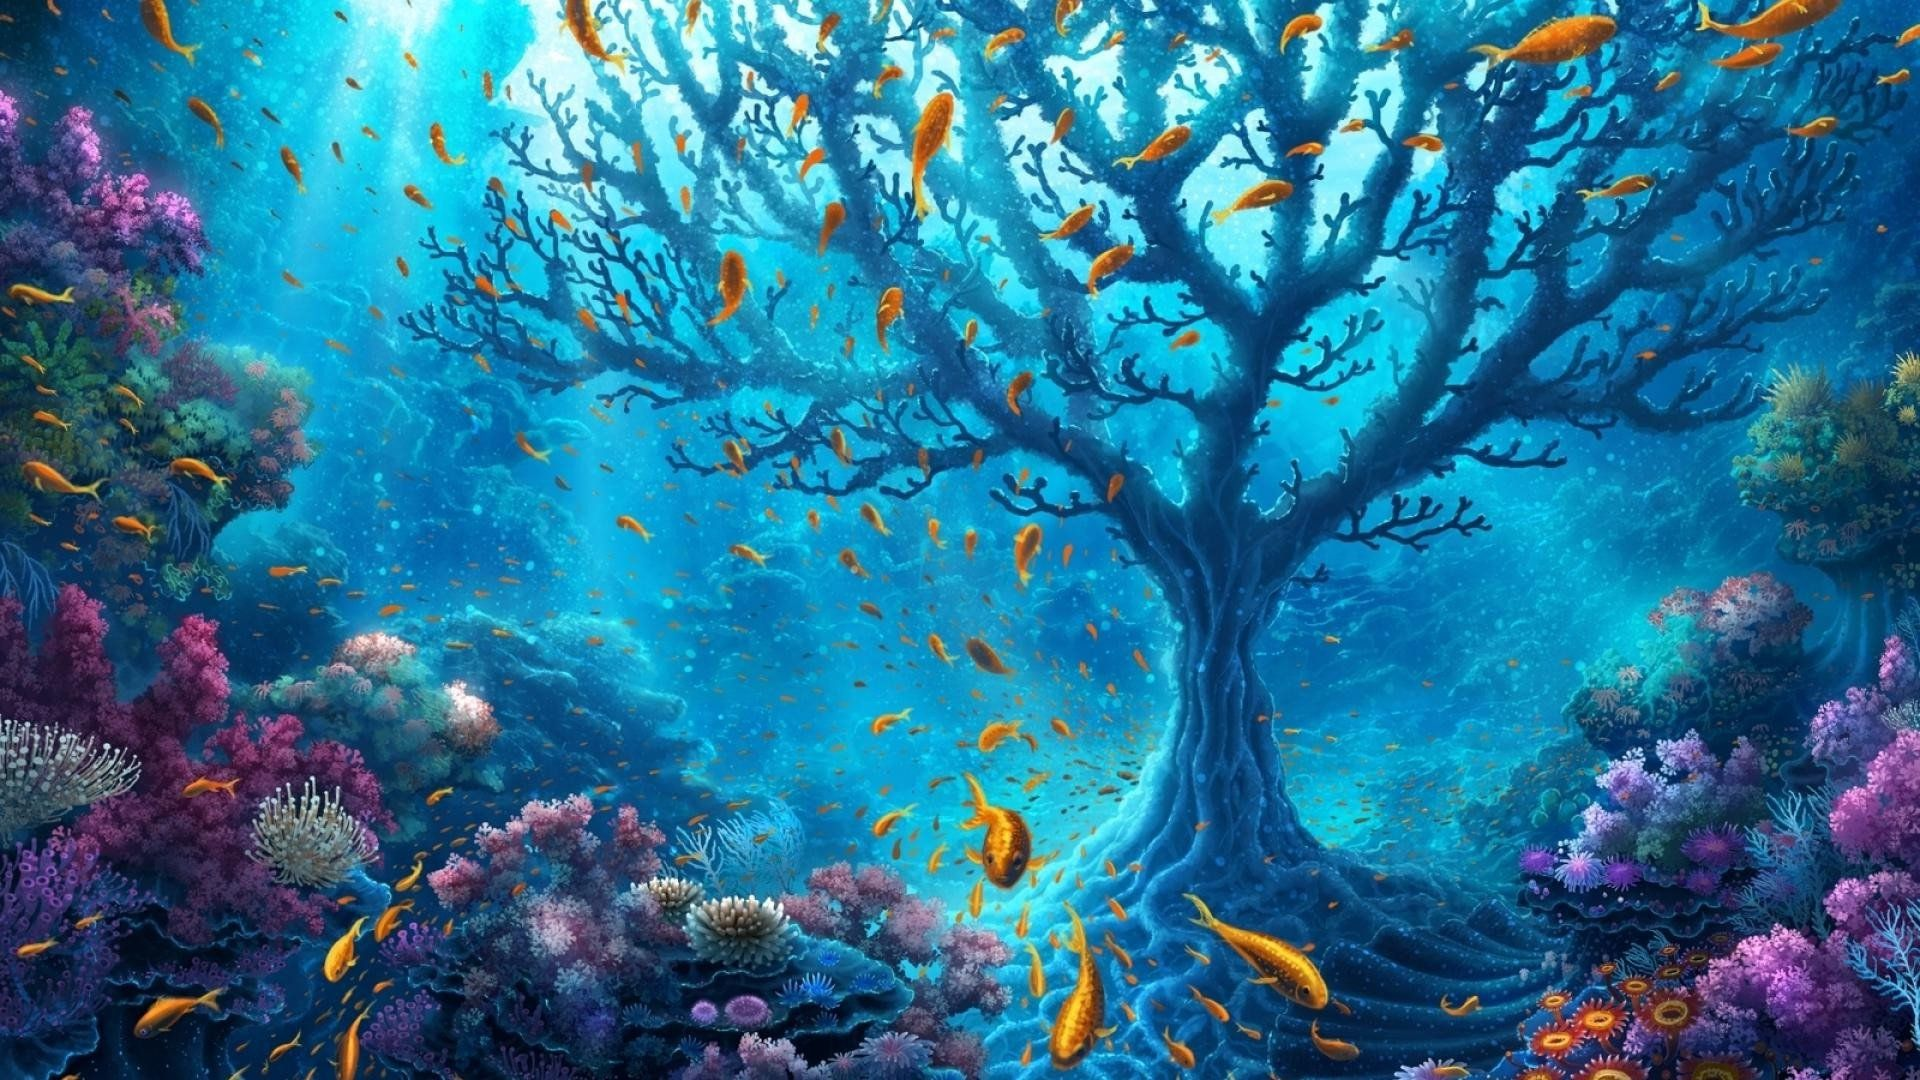 underwater wallpaper hd